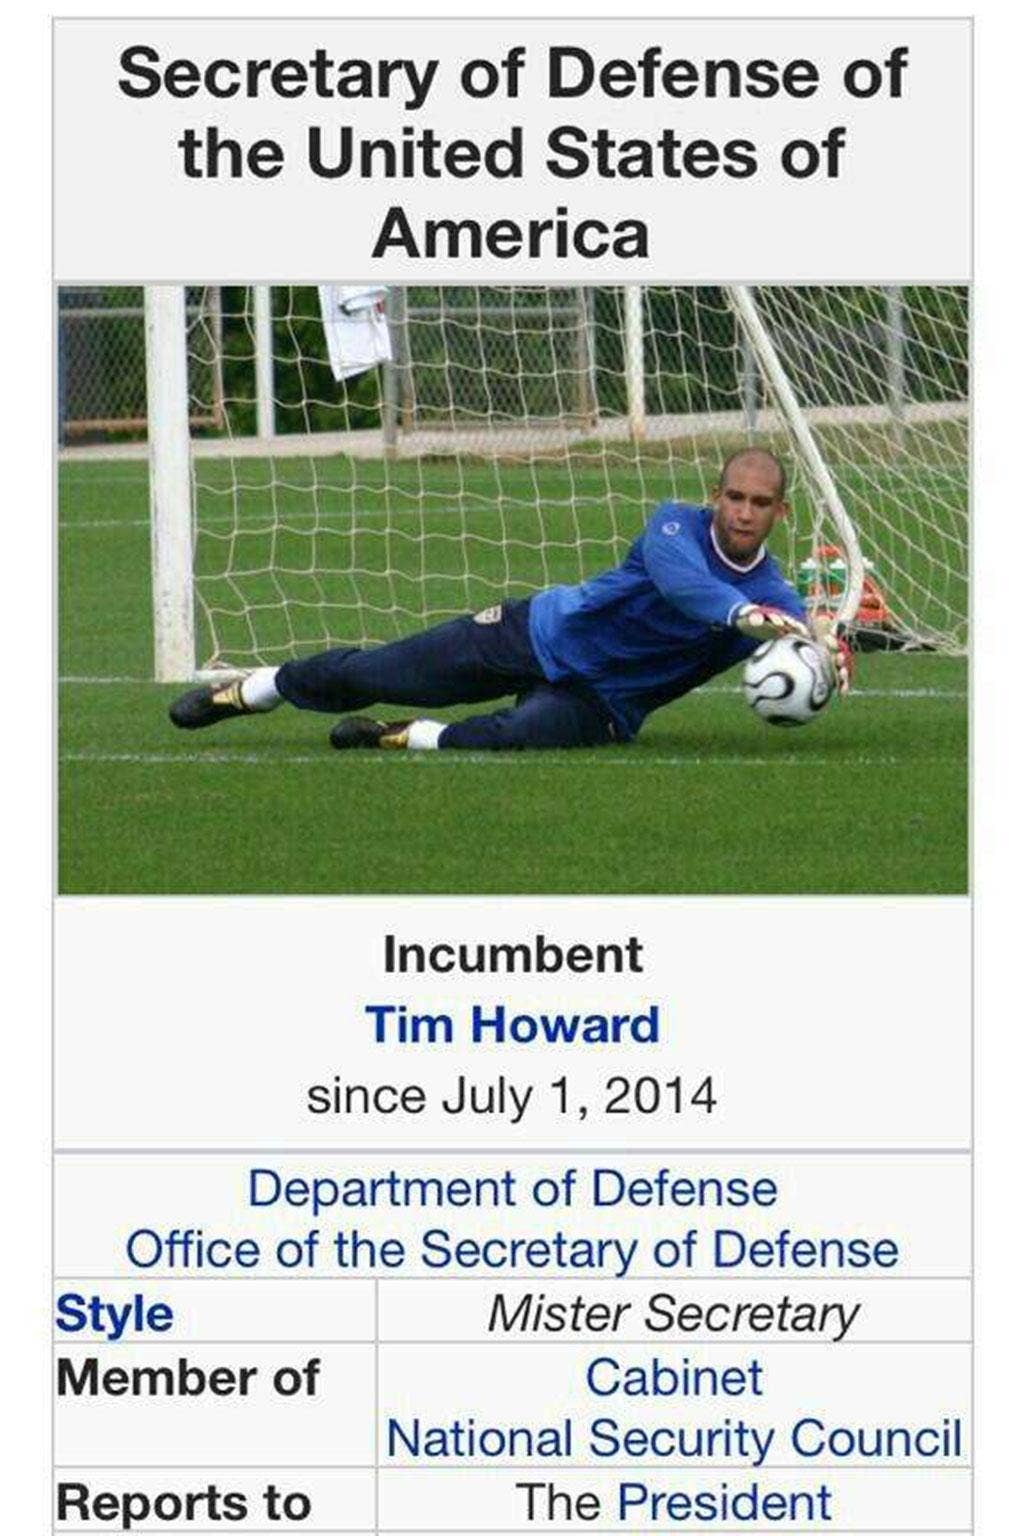 Tim Howard's Wikipedia page was changed to claim he was the new Secretary of Defence of the USA